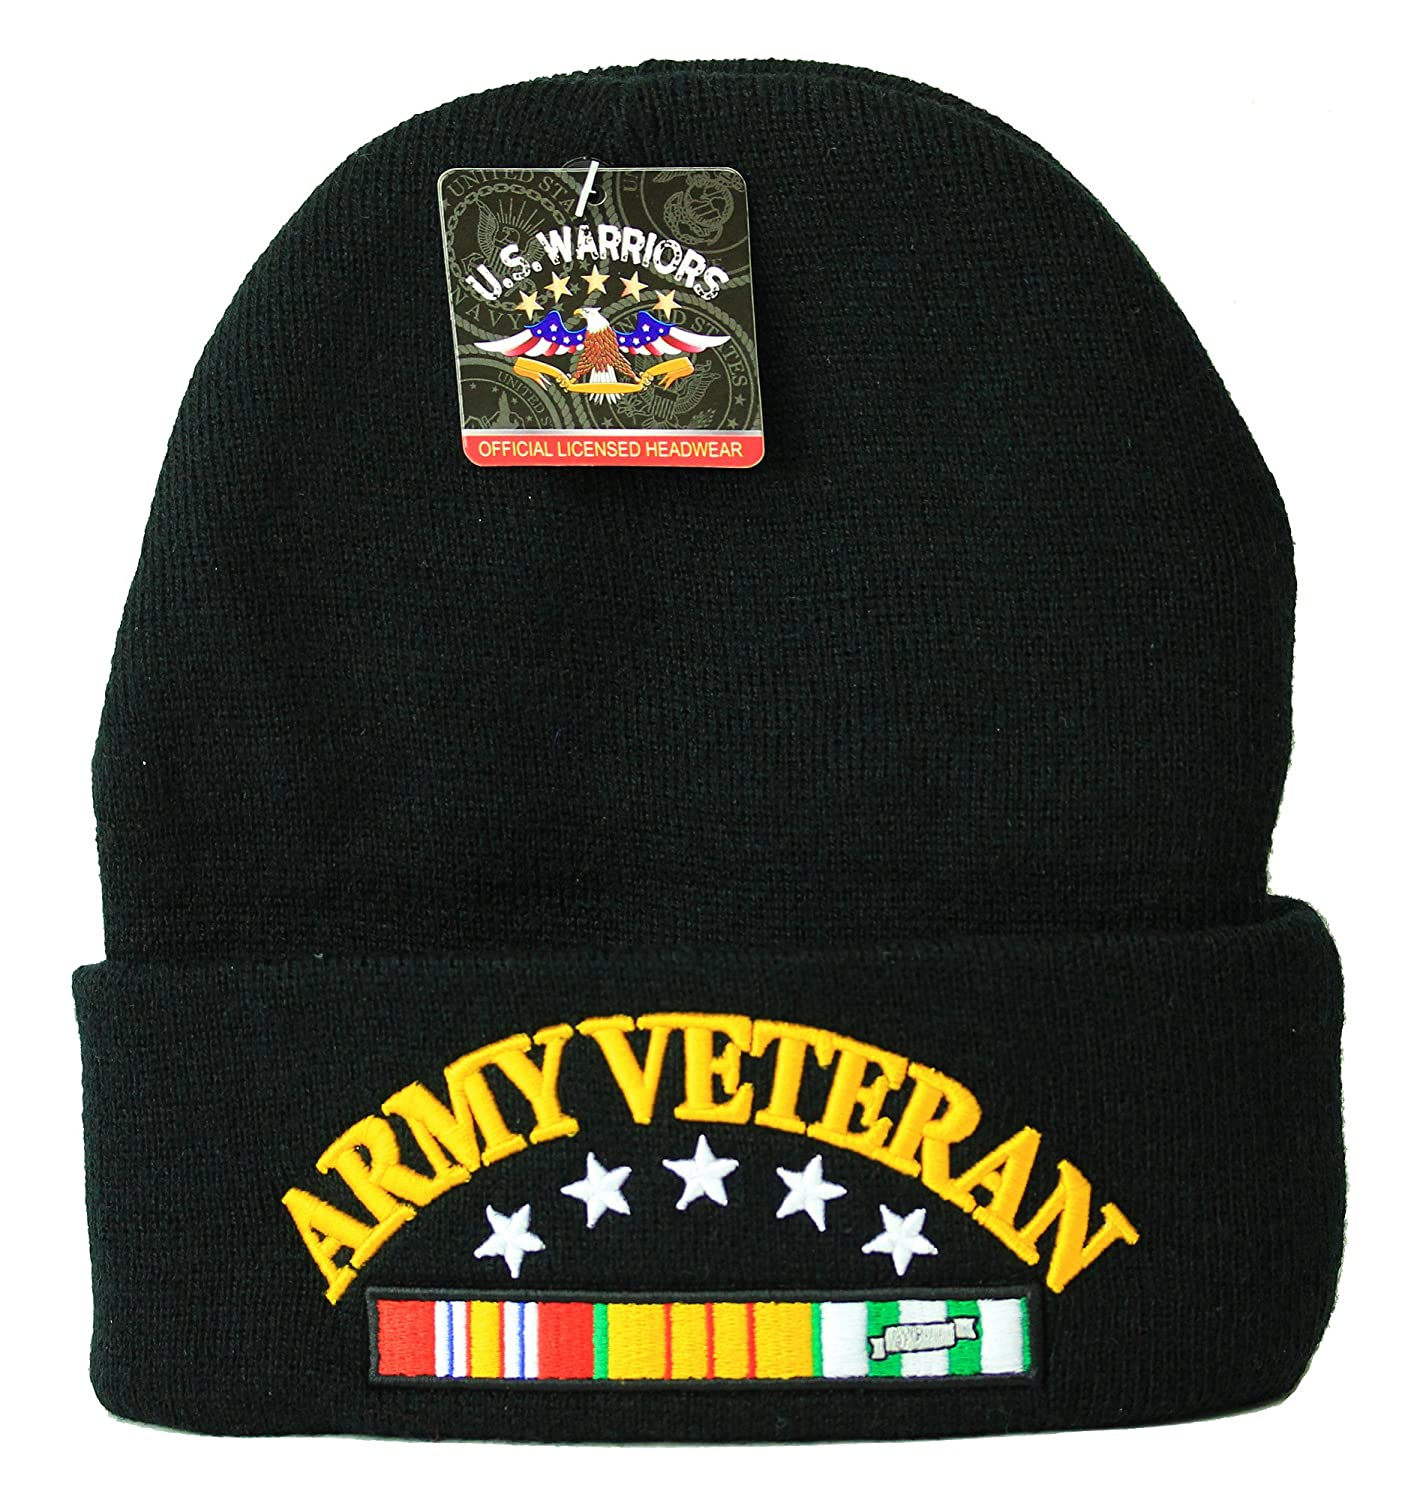 US Military Beanie Veteran Official Licensed Headwear Army Veteran Black at  Amazon Men s Clothing store  4ff11381f30